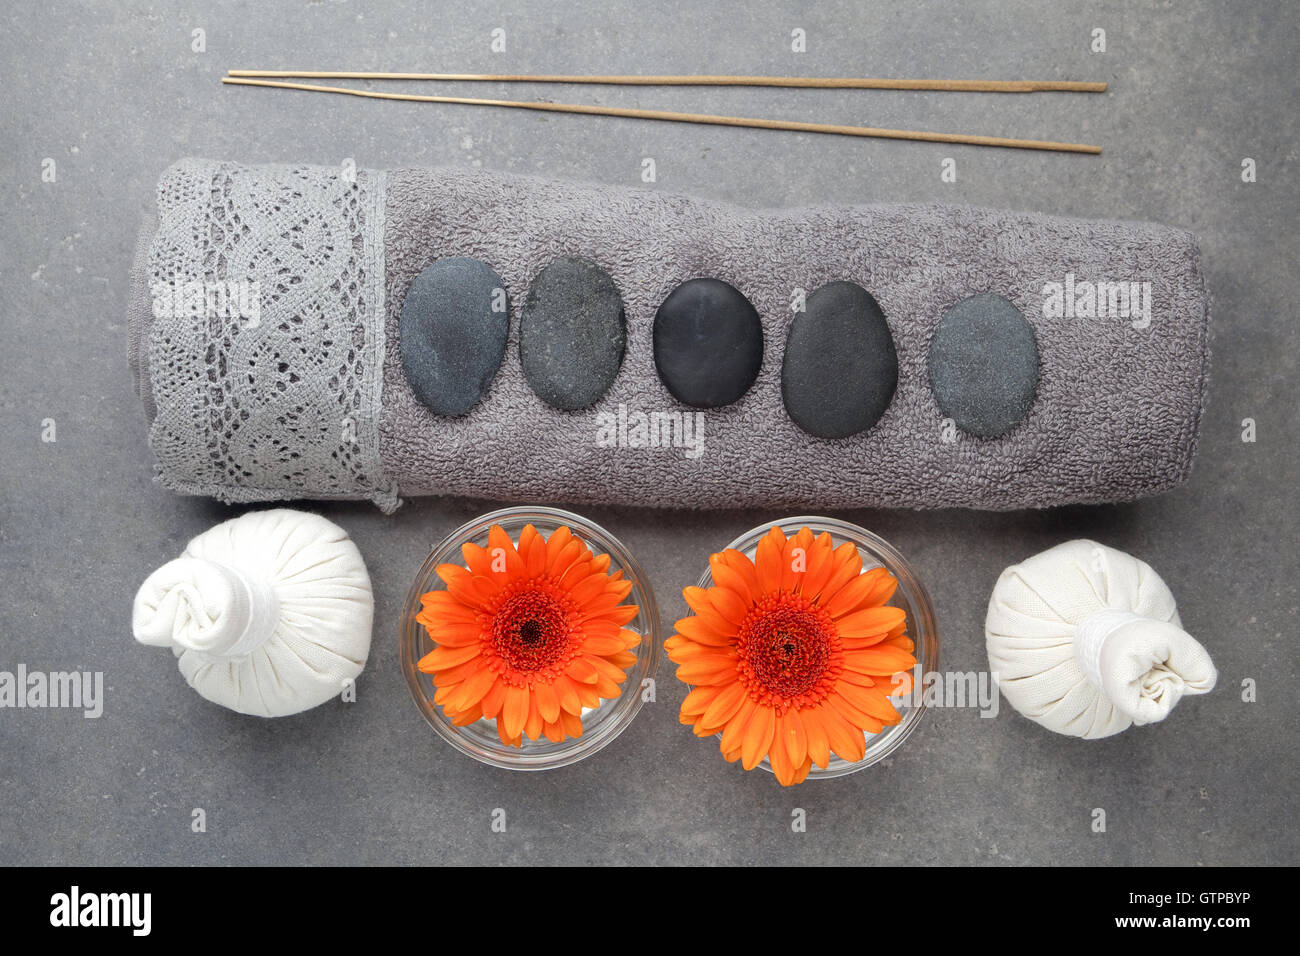 Spa massage setting with rolled towel, thai herbal compress balls and flowers on grey surface - Stock Image